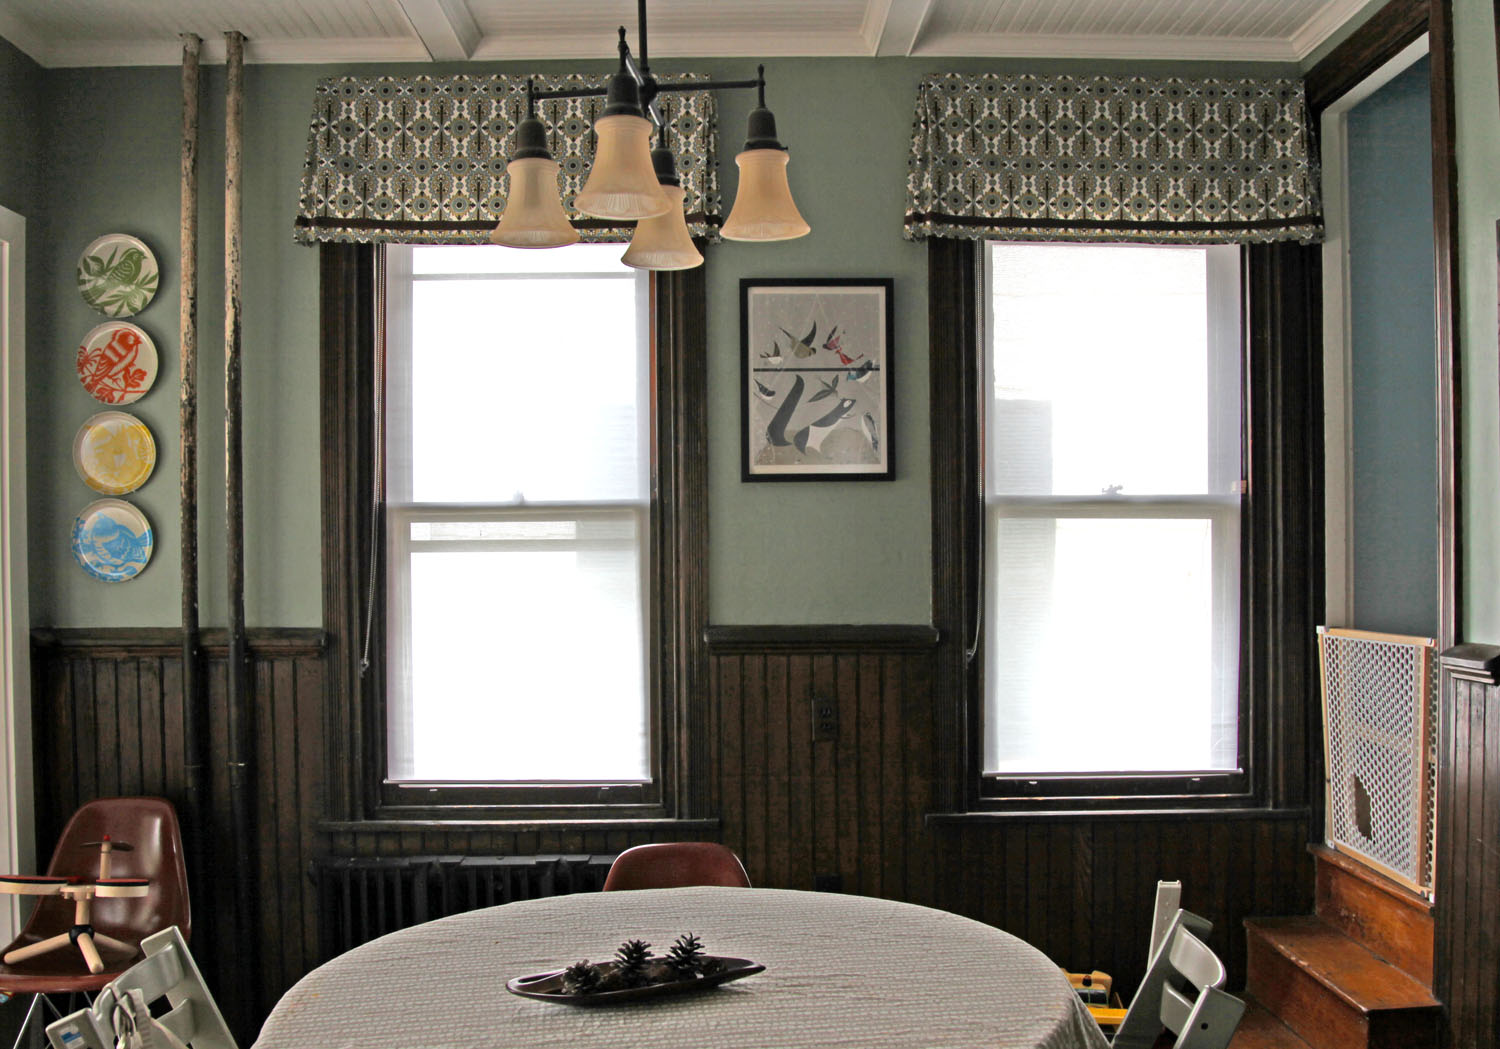 The Dining Room Windows The Valances